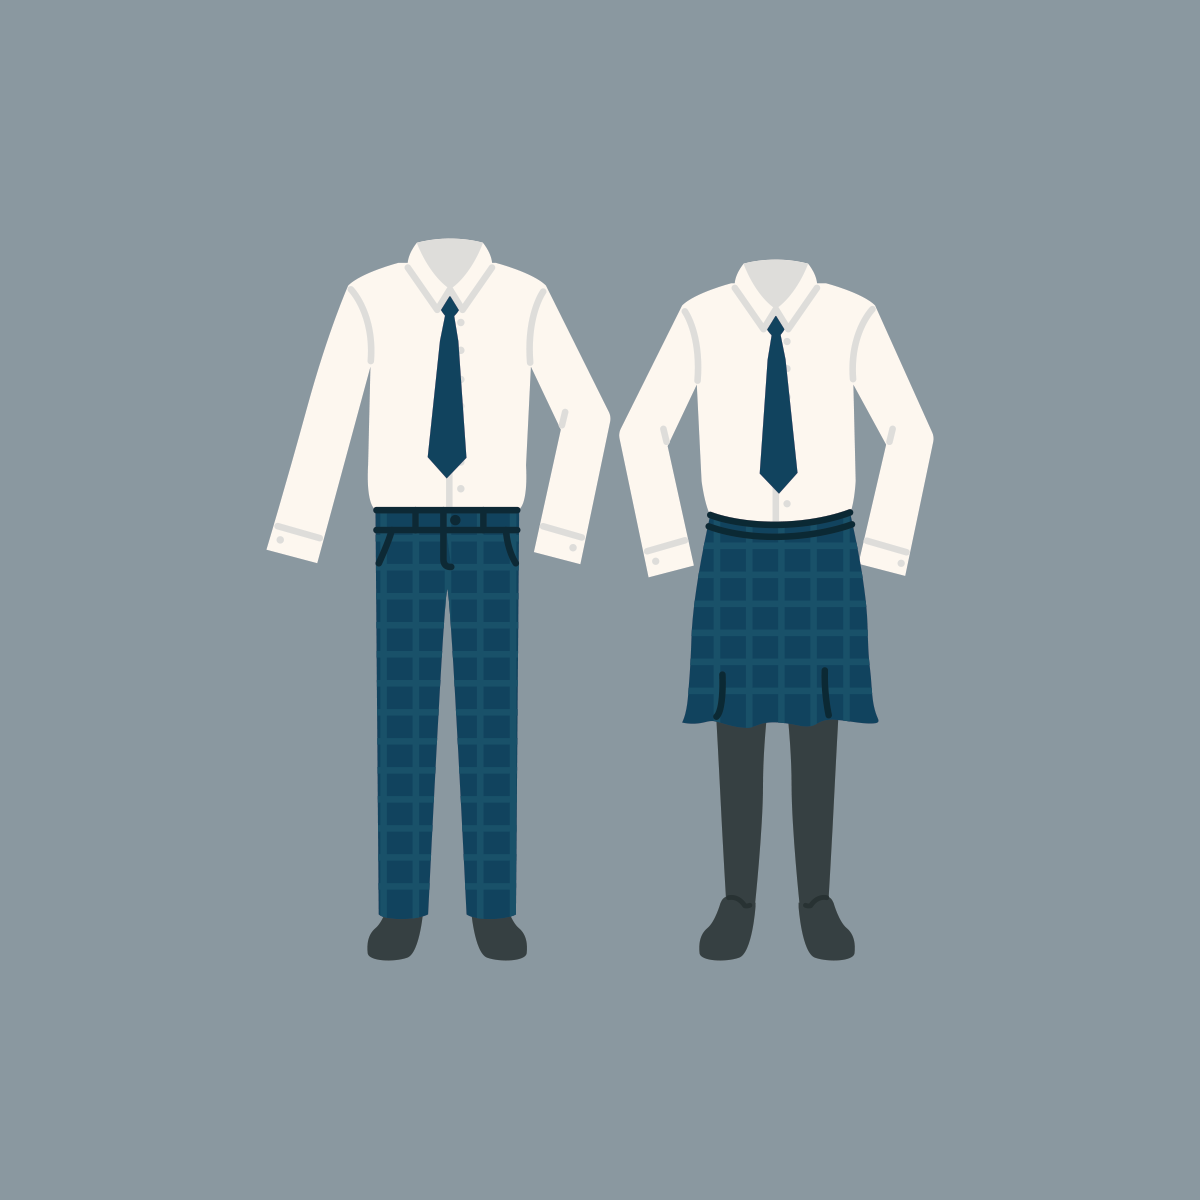 72 school uniforms